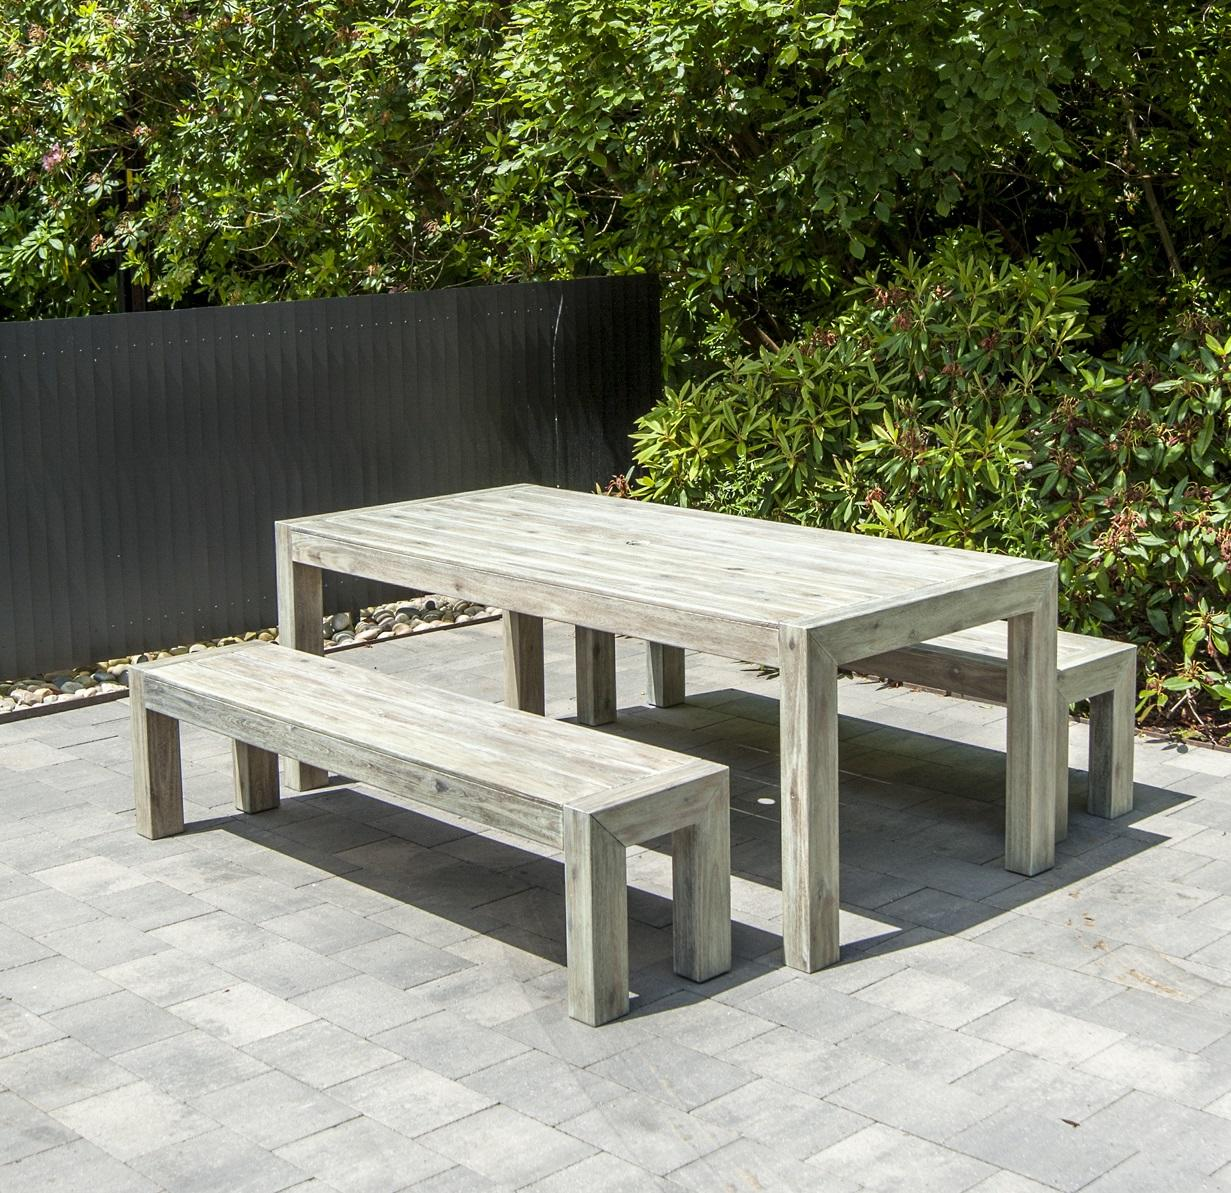 wooden_picnic_table_benches_garden_outdoor_grey_painted_patio_dining_furniture